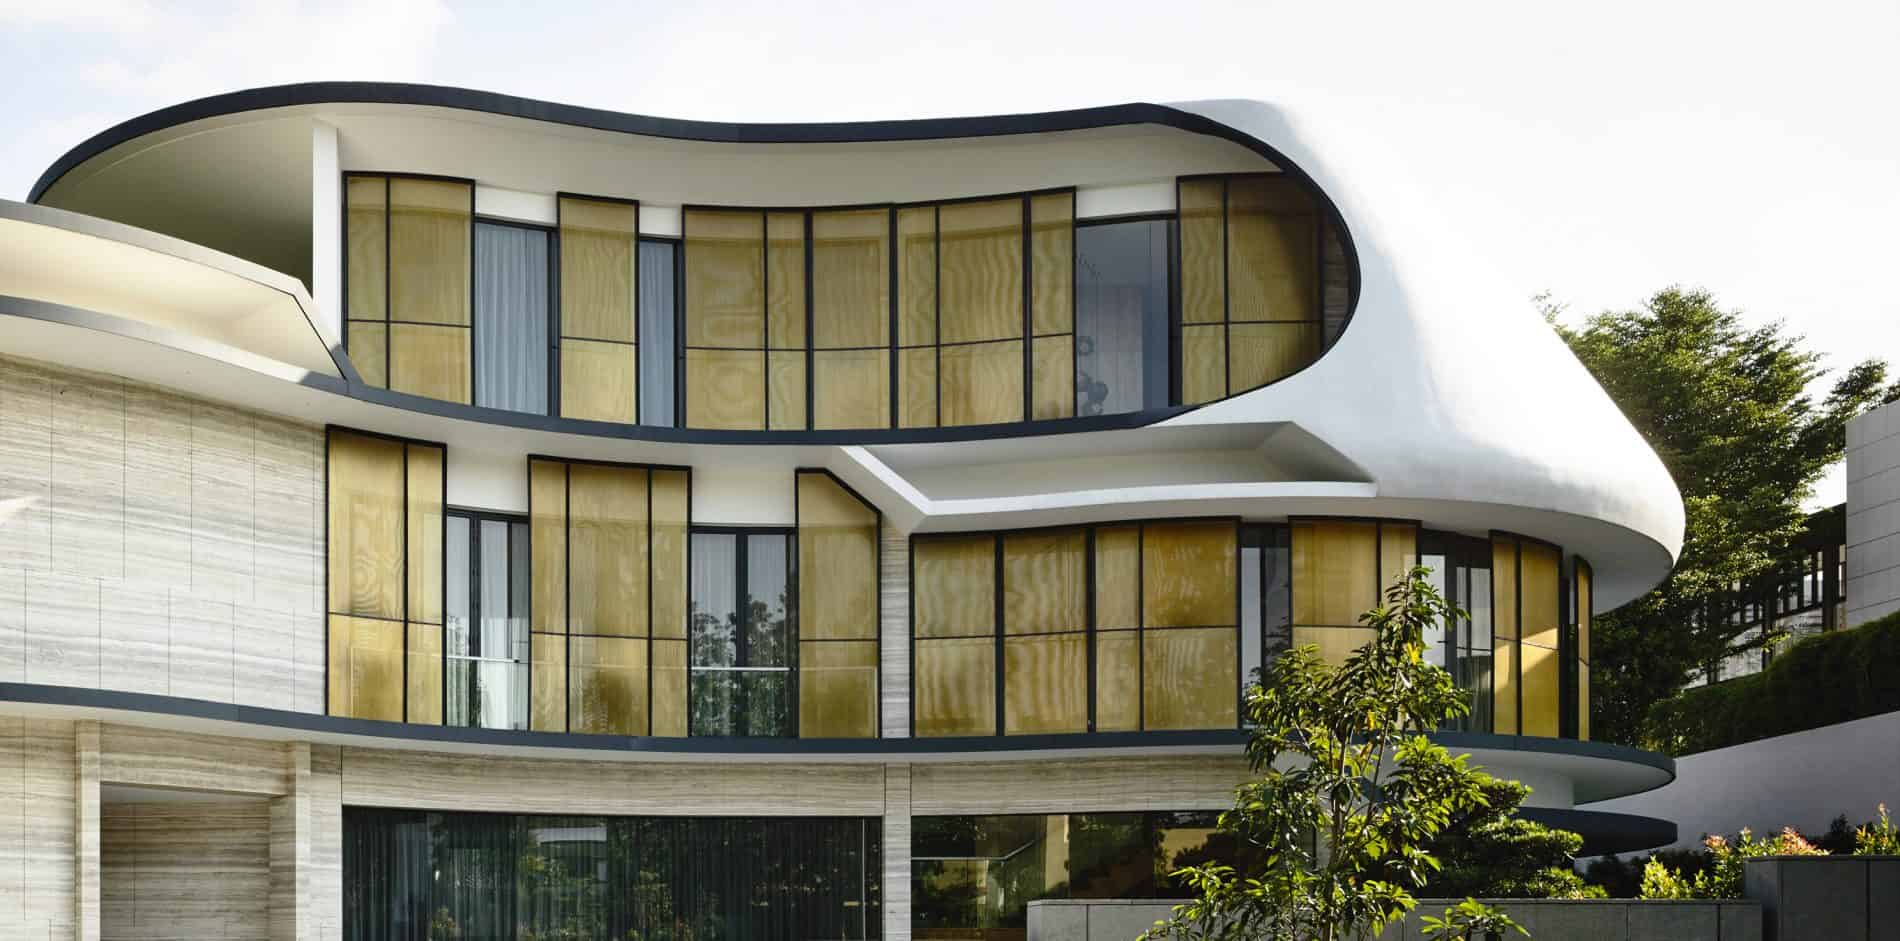 Customized Curved Sliding Panel with Anodized Mesh Infill at Binjai Park by K2lD Architects Pte Ltd